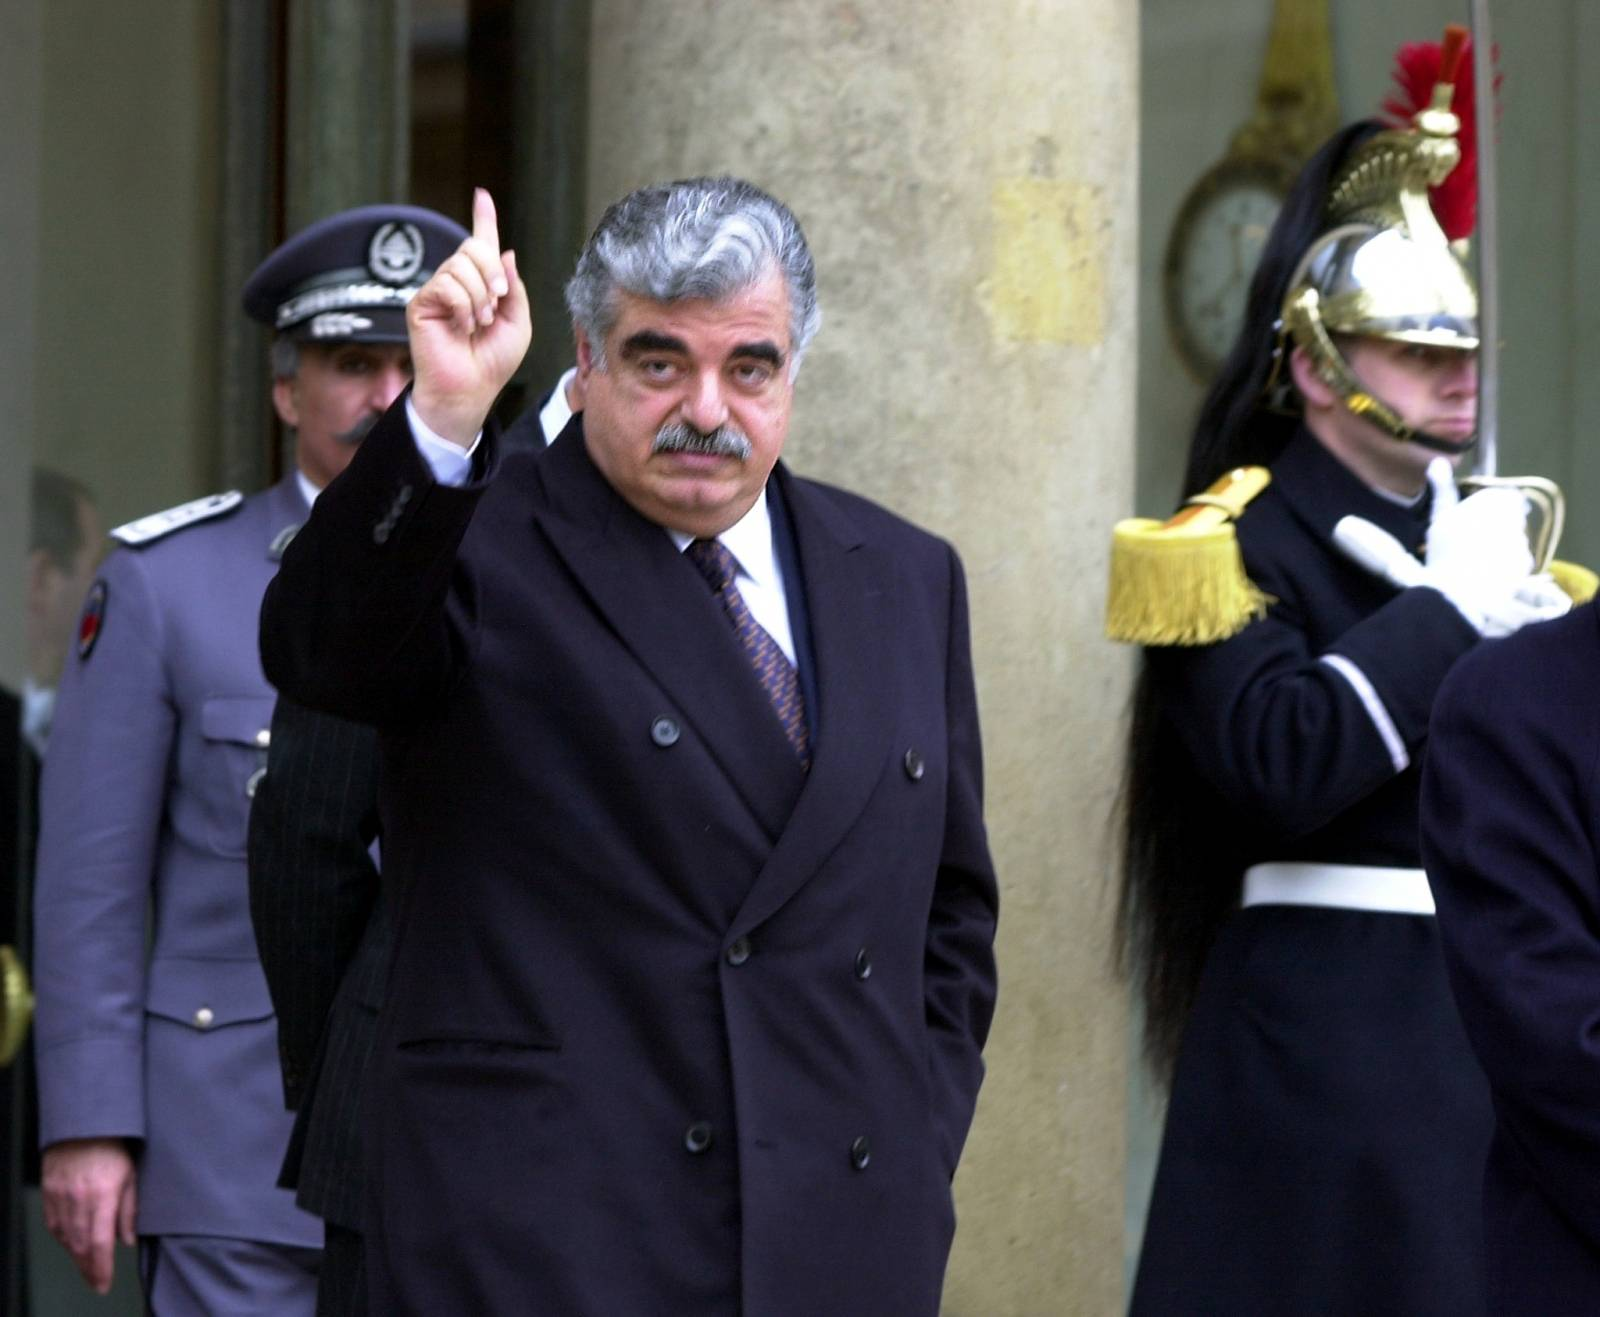 FILE PHOTO: Lebanese Prime Minister Rafik Hariri leaves the Elysee Palace following a meeting with French President Jacques Chirac in Paris